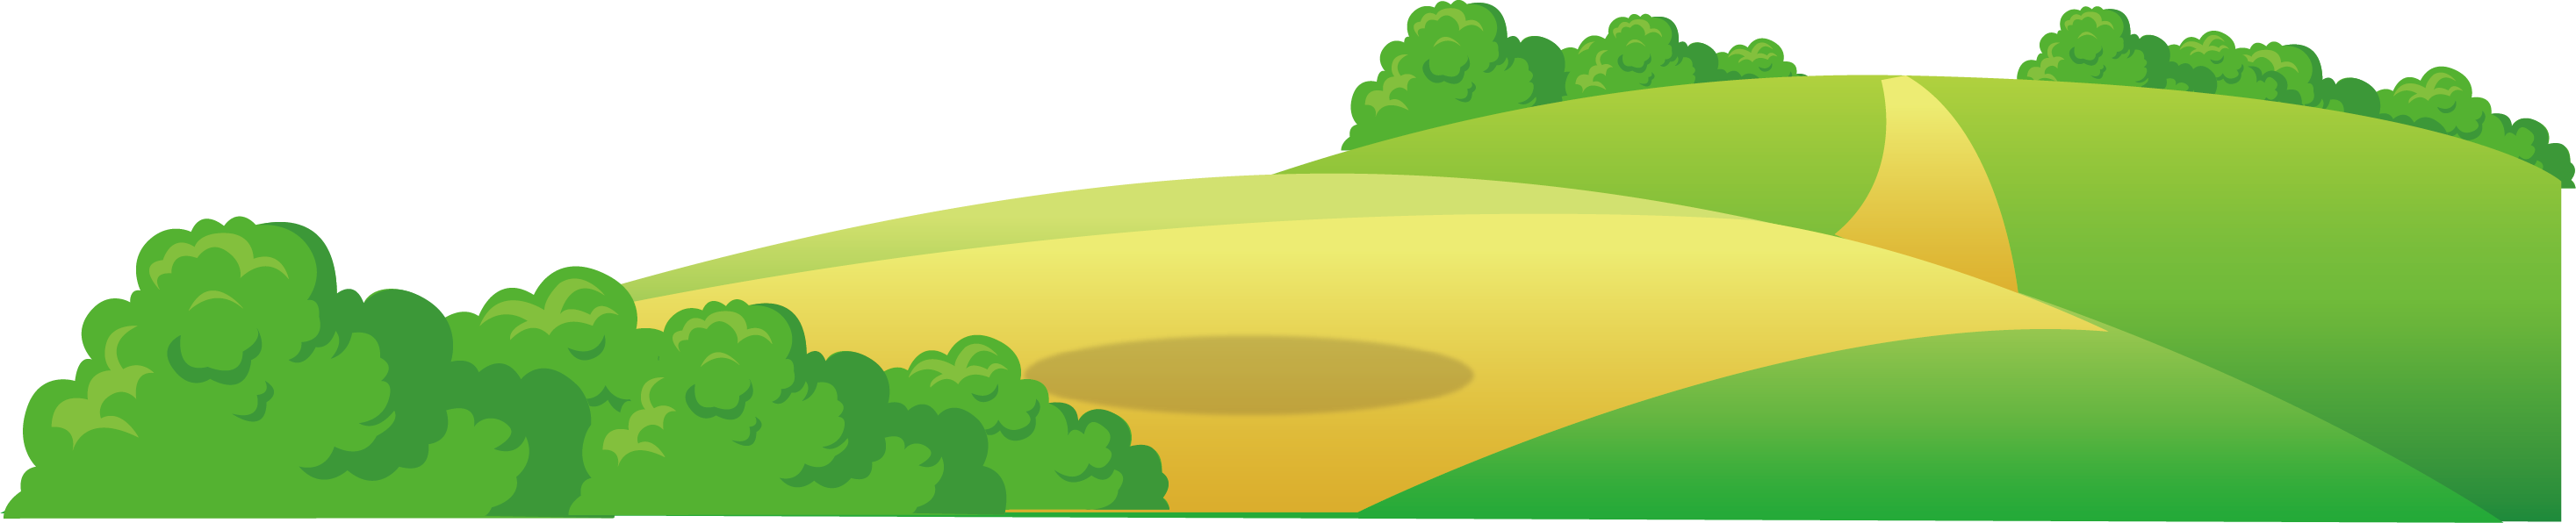 Mountain cartoon png. Vector element transprent free